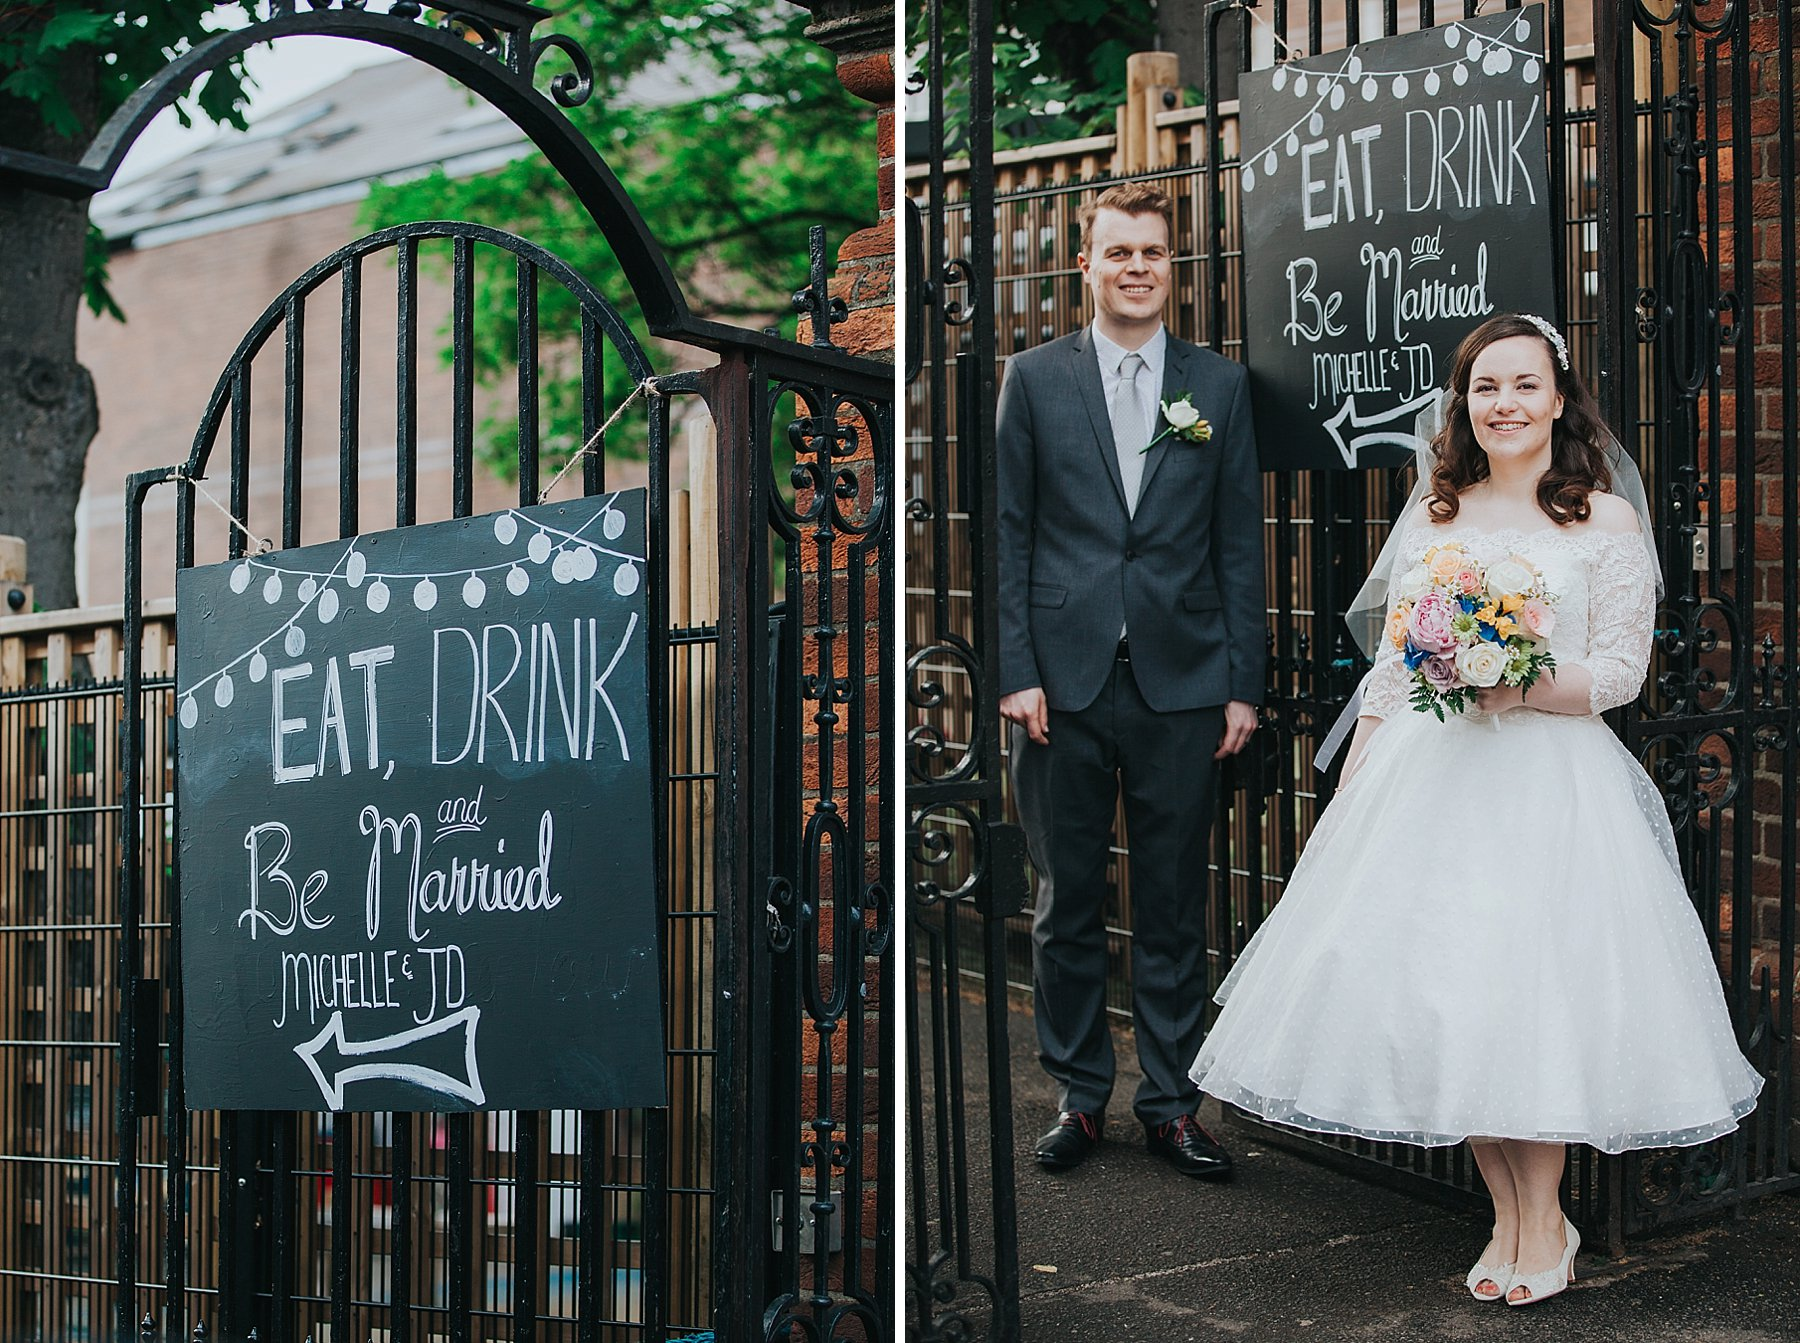 192 eat drink be married entrance sign bride groom arrive schoolyard wedding reception.jpg